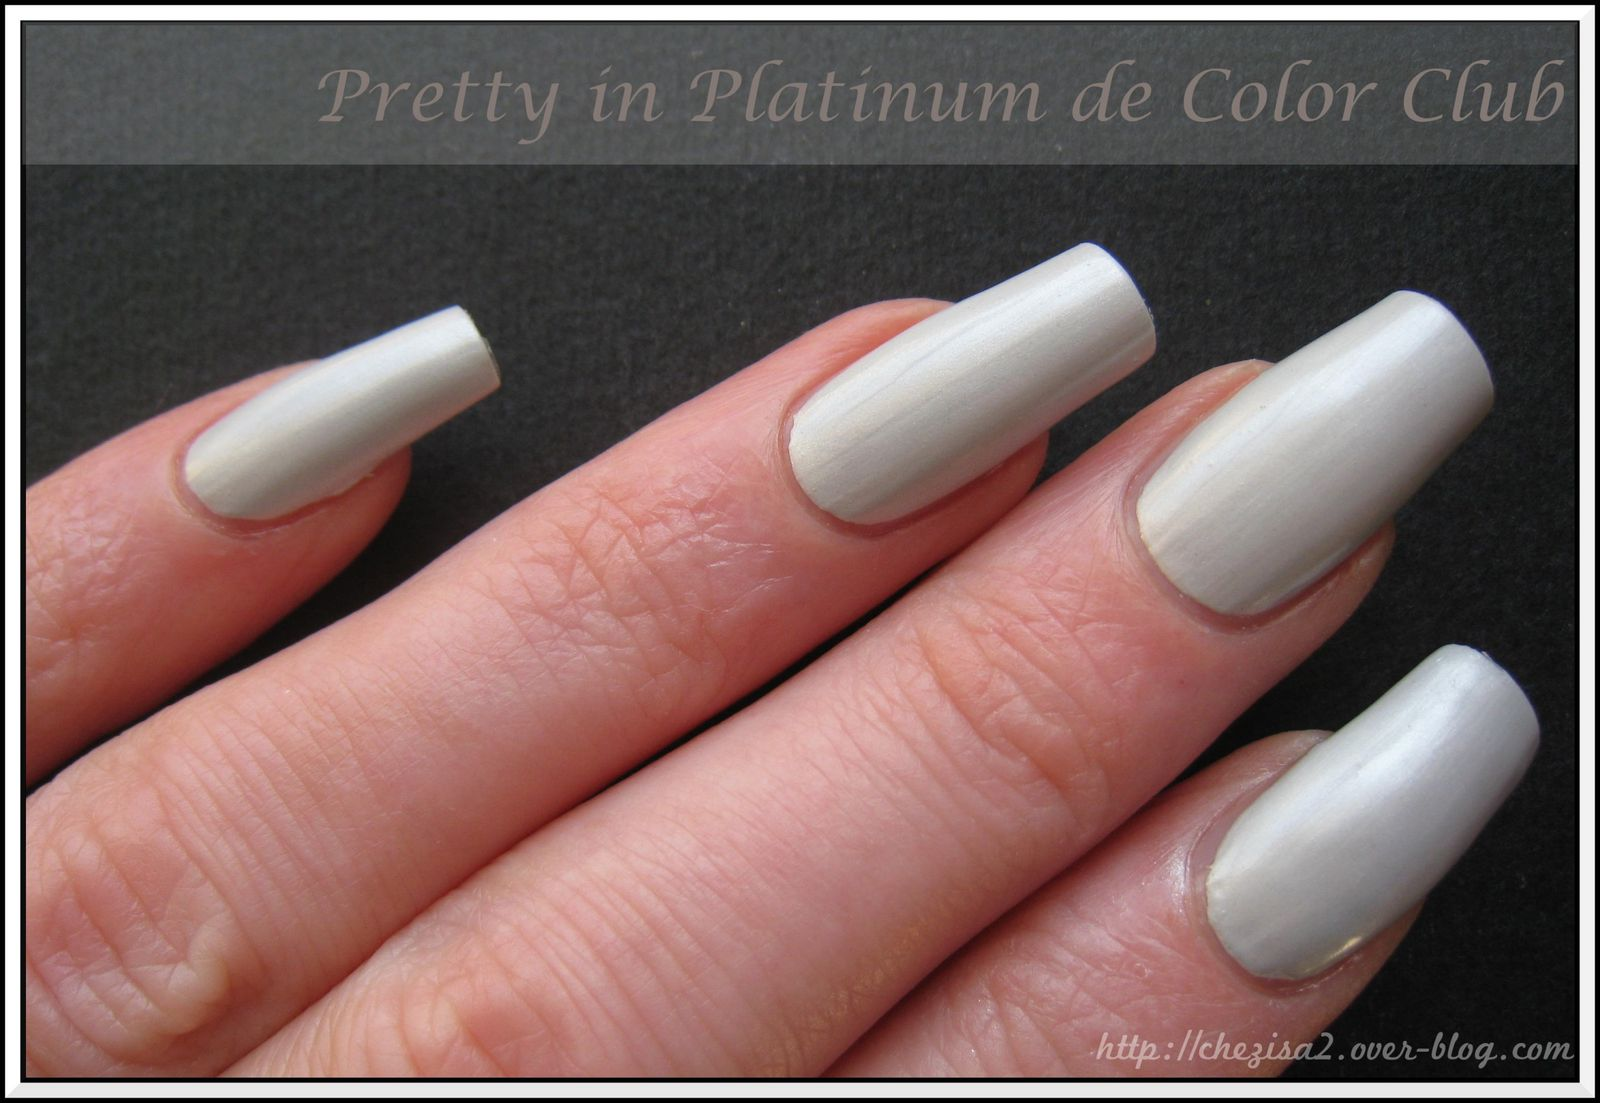 http://idata.over-blog.com/1/10/00/62/Vernis/Pretty-in-Platinum--1-.jpg